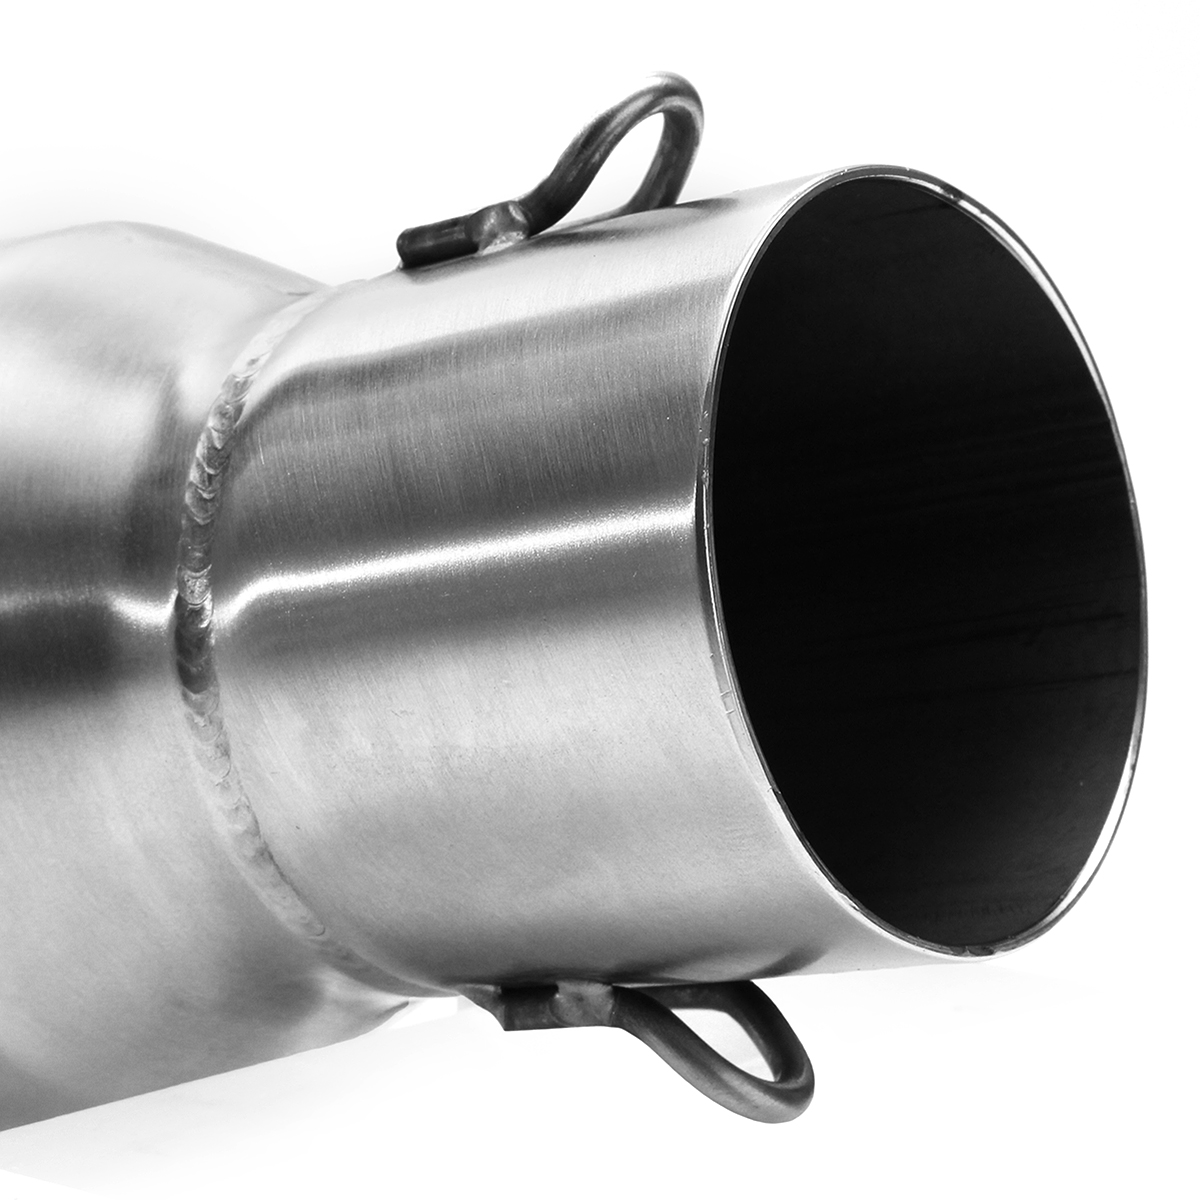 36mm-51mm Dolphin Shape Motorcycle Exhaust Muffler Pipe with Silencer Stainless Steel